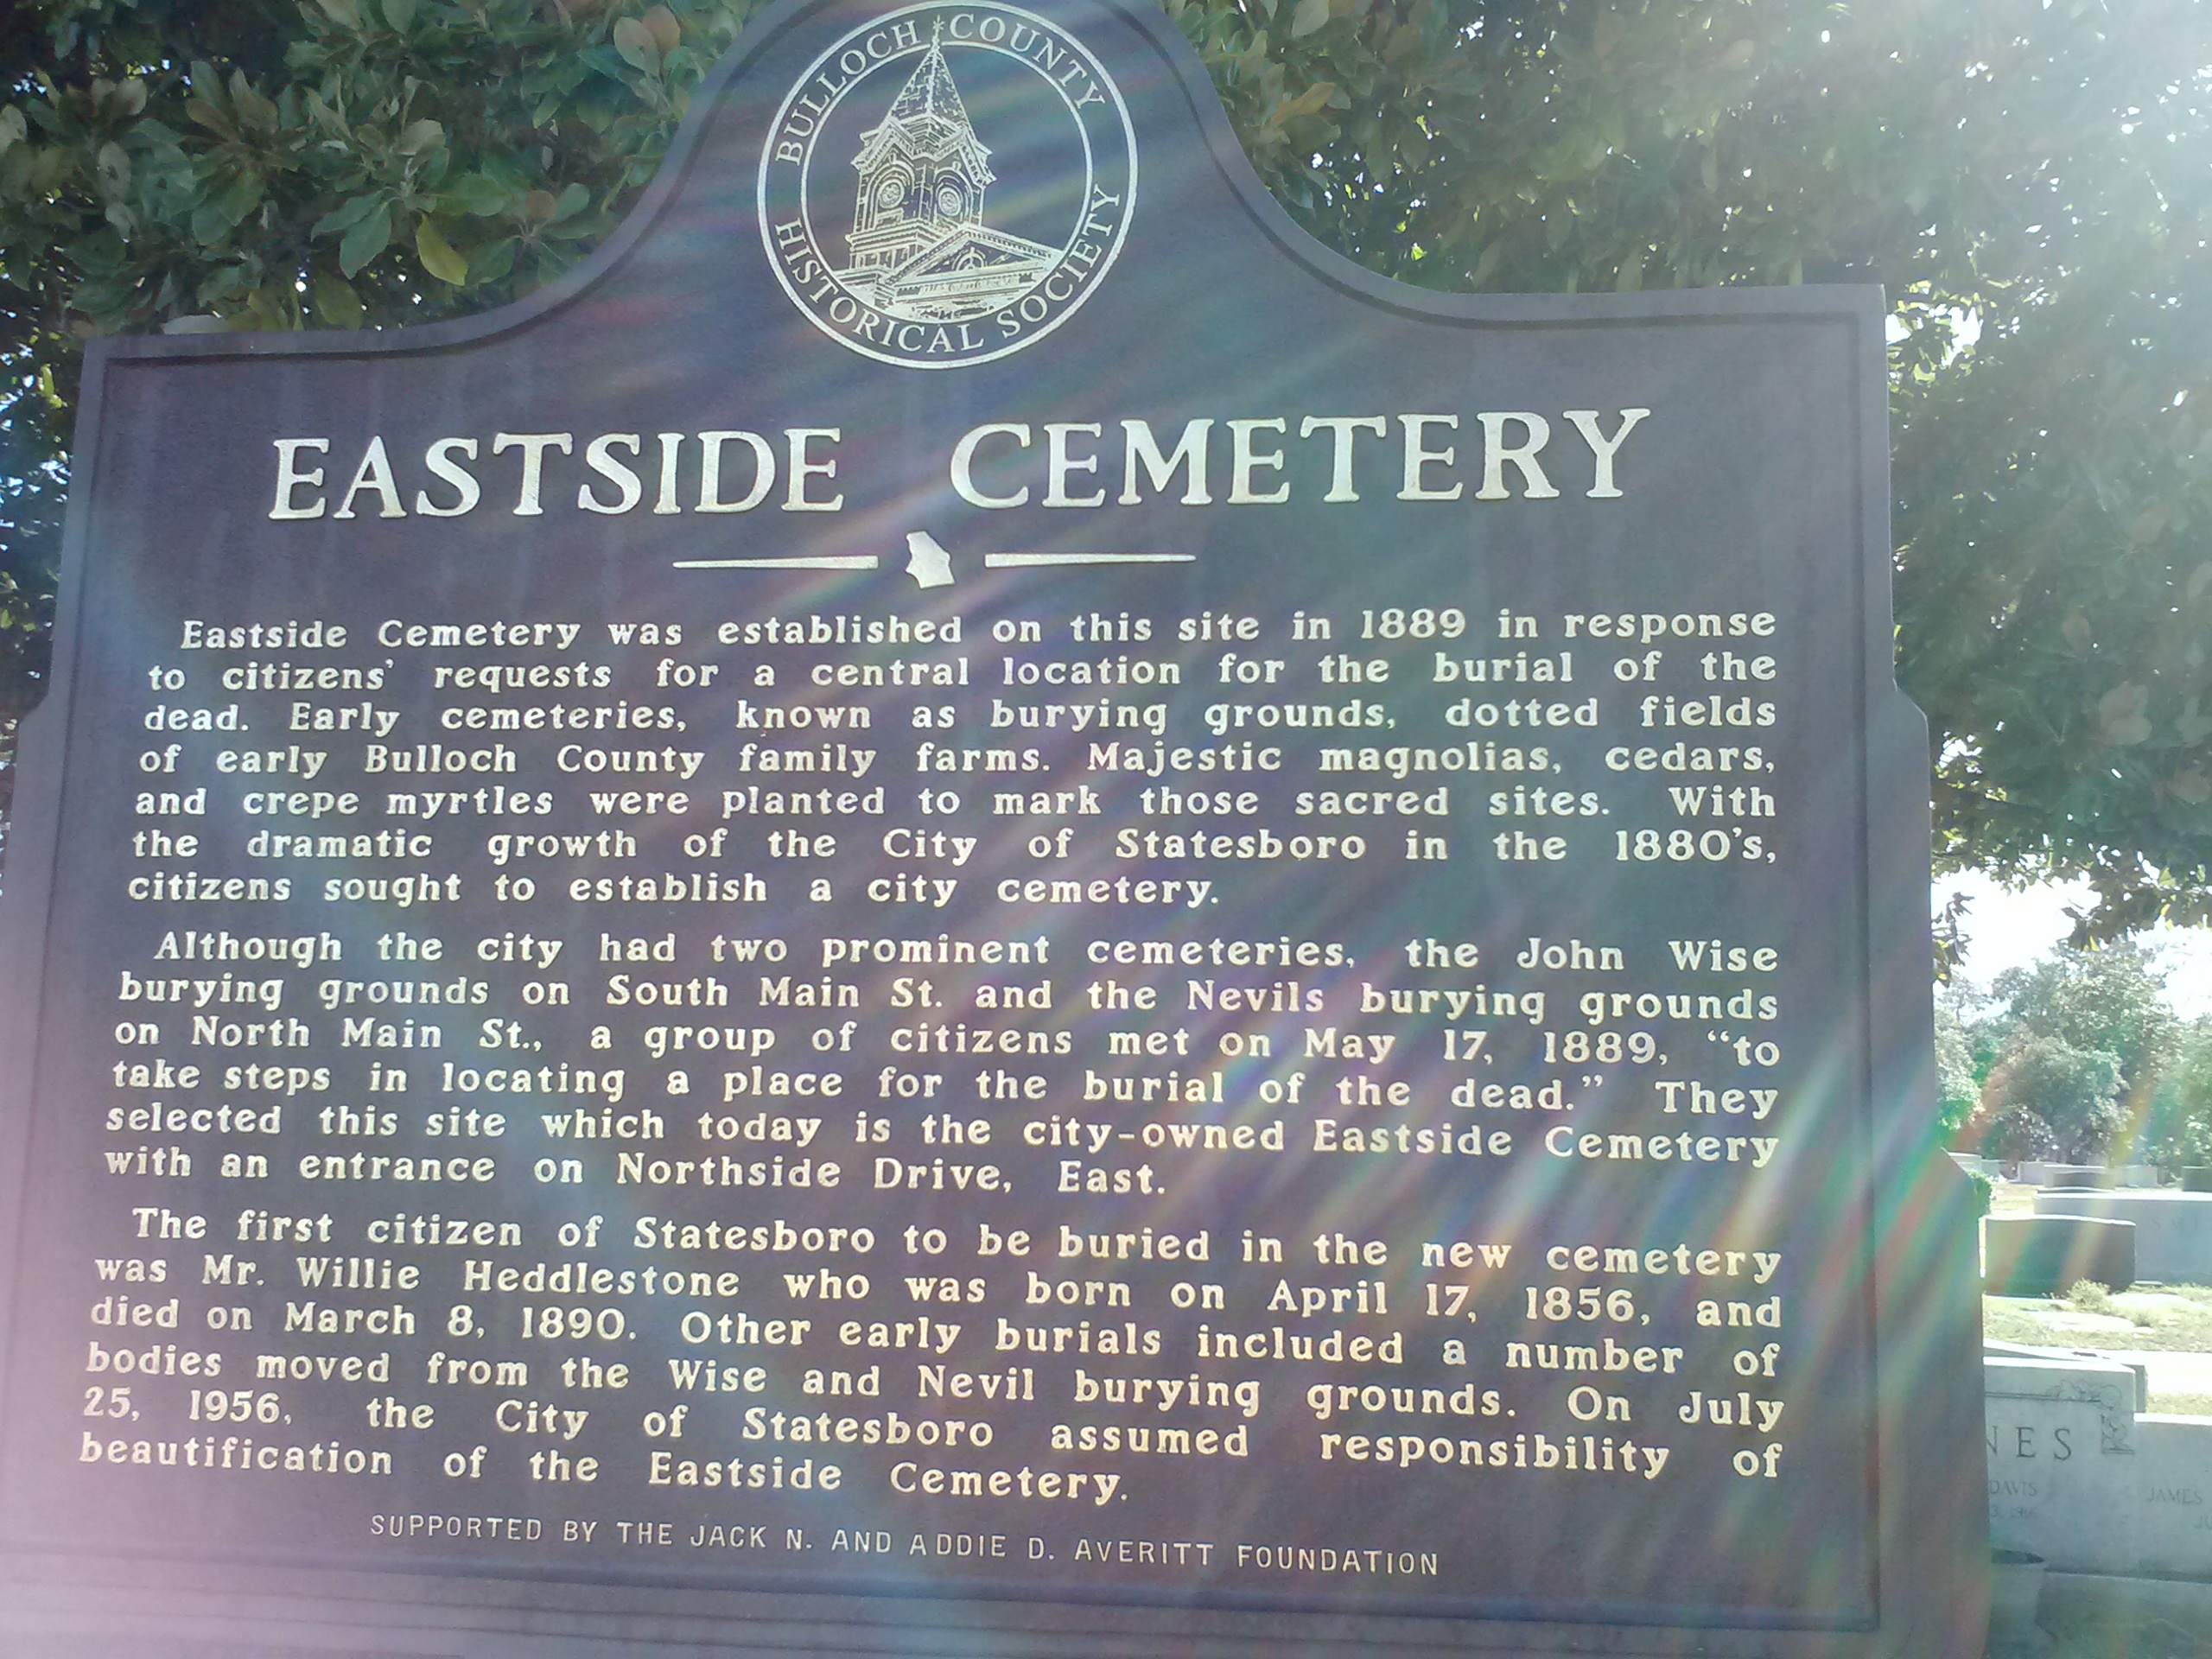 Eastside Cemetery